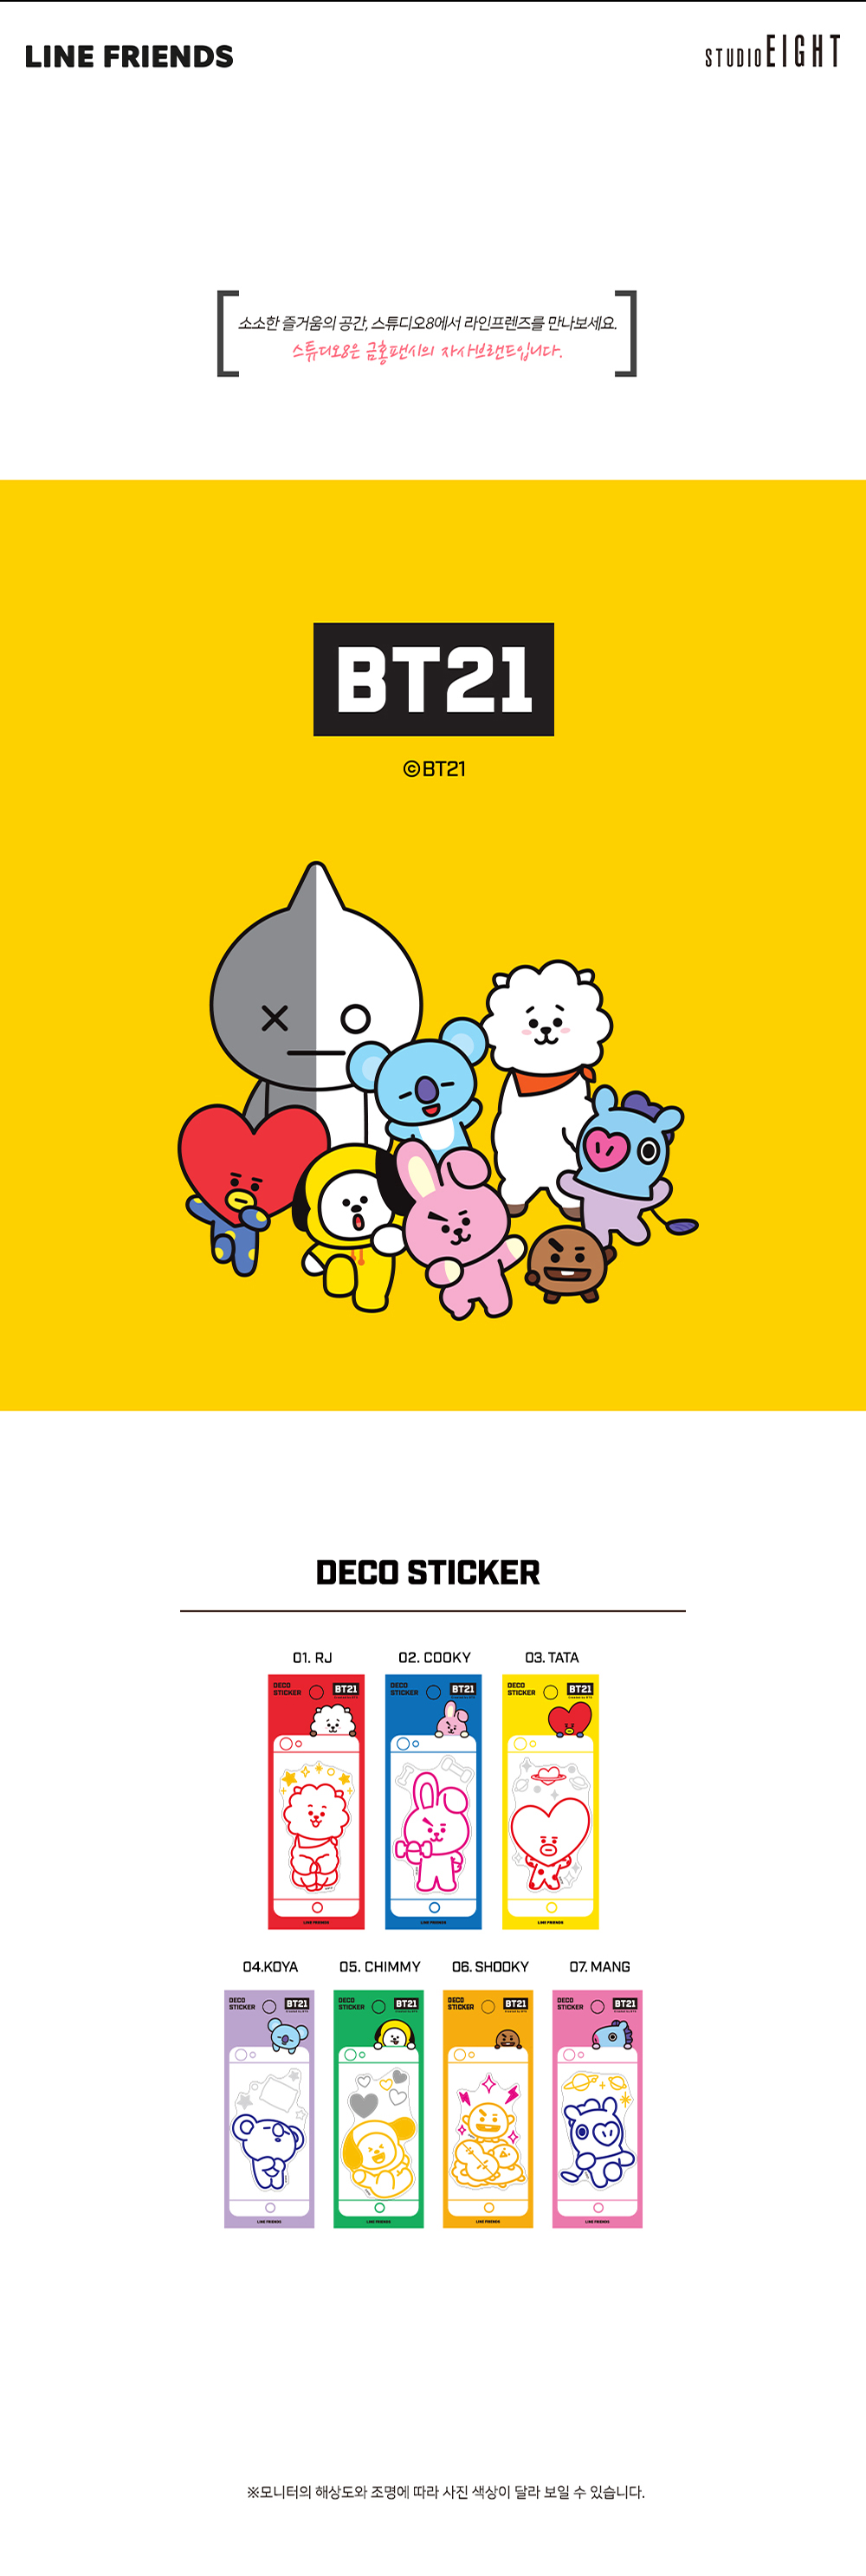 bt21_kf_decostickermobile_01.jpg